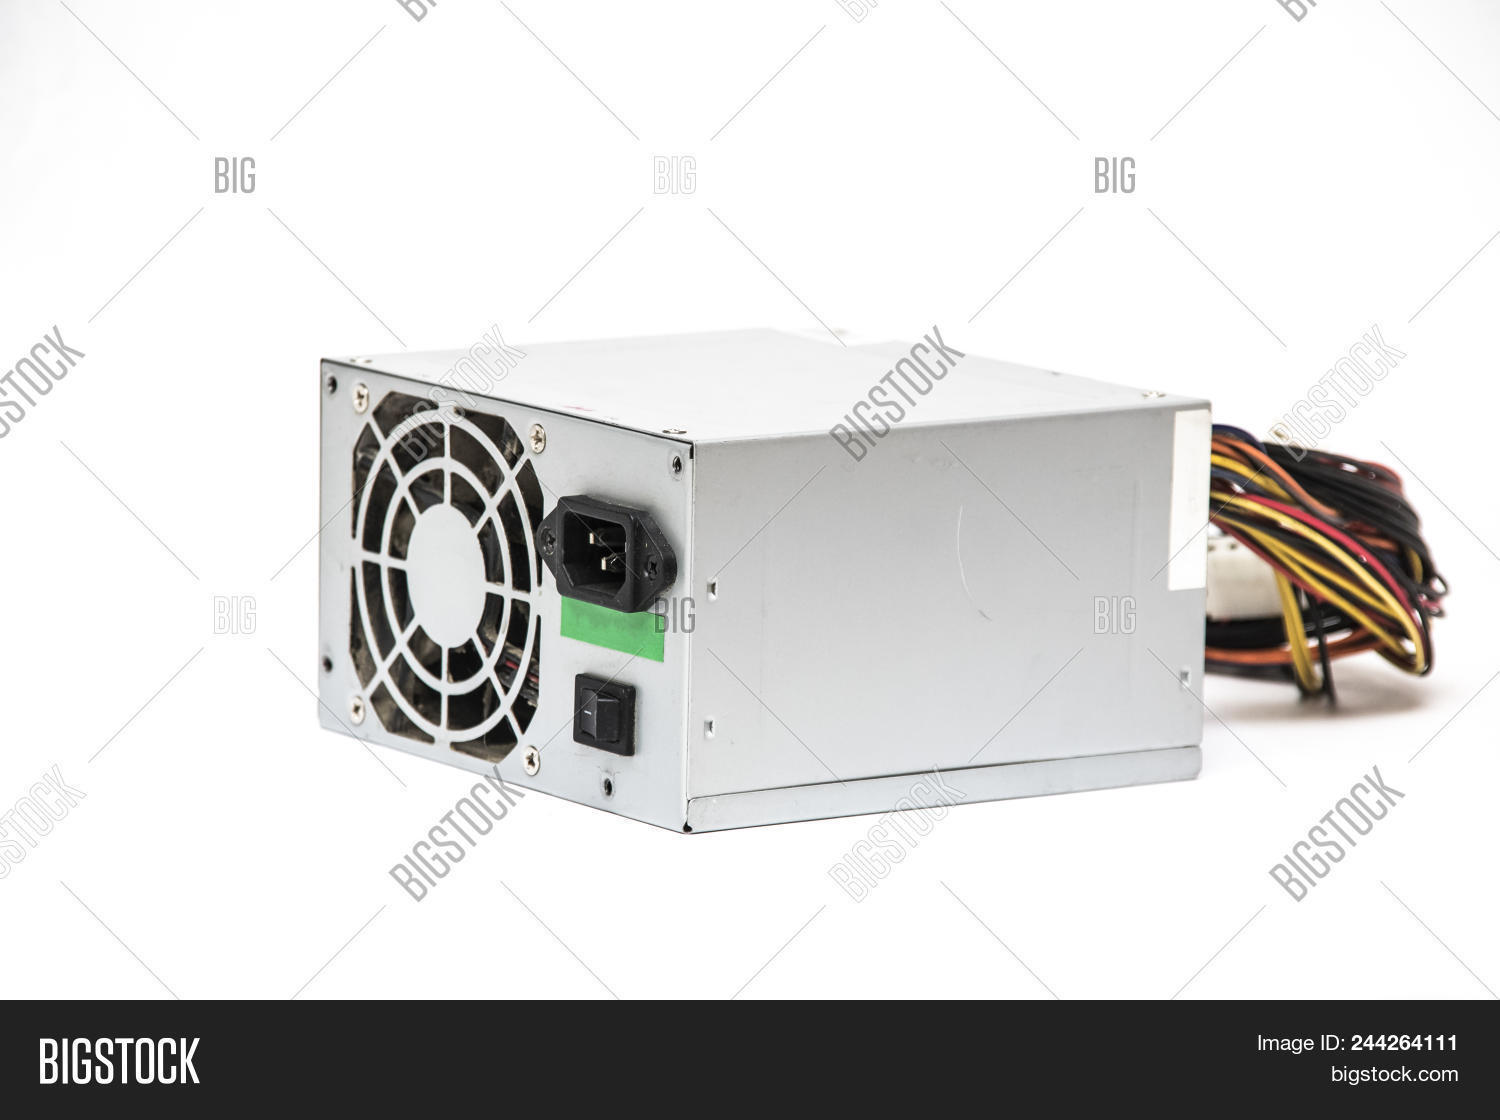 background,black,box,button,cable,case,close,closeup,component,computer,cooler,current,device,electric,electrical,electricity,electronics,energy,equipment,fan,grille,hardware,iron,isolated,line,metal,outlet,panel,part,pc,plug,power,psu,sata,saving,silver,supply,switch,technology,unit,up,ventilator,volt,voltage,watt,white,wire,zinc